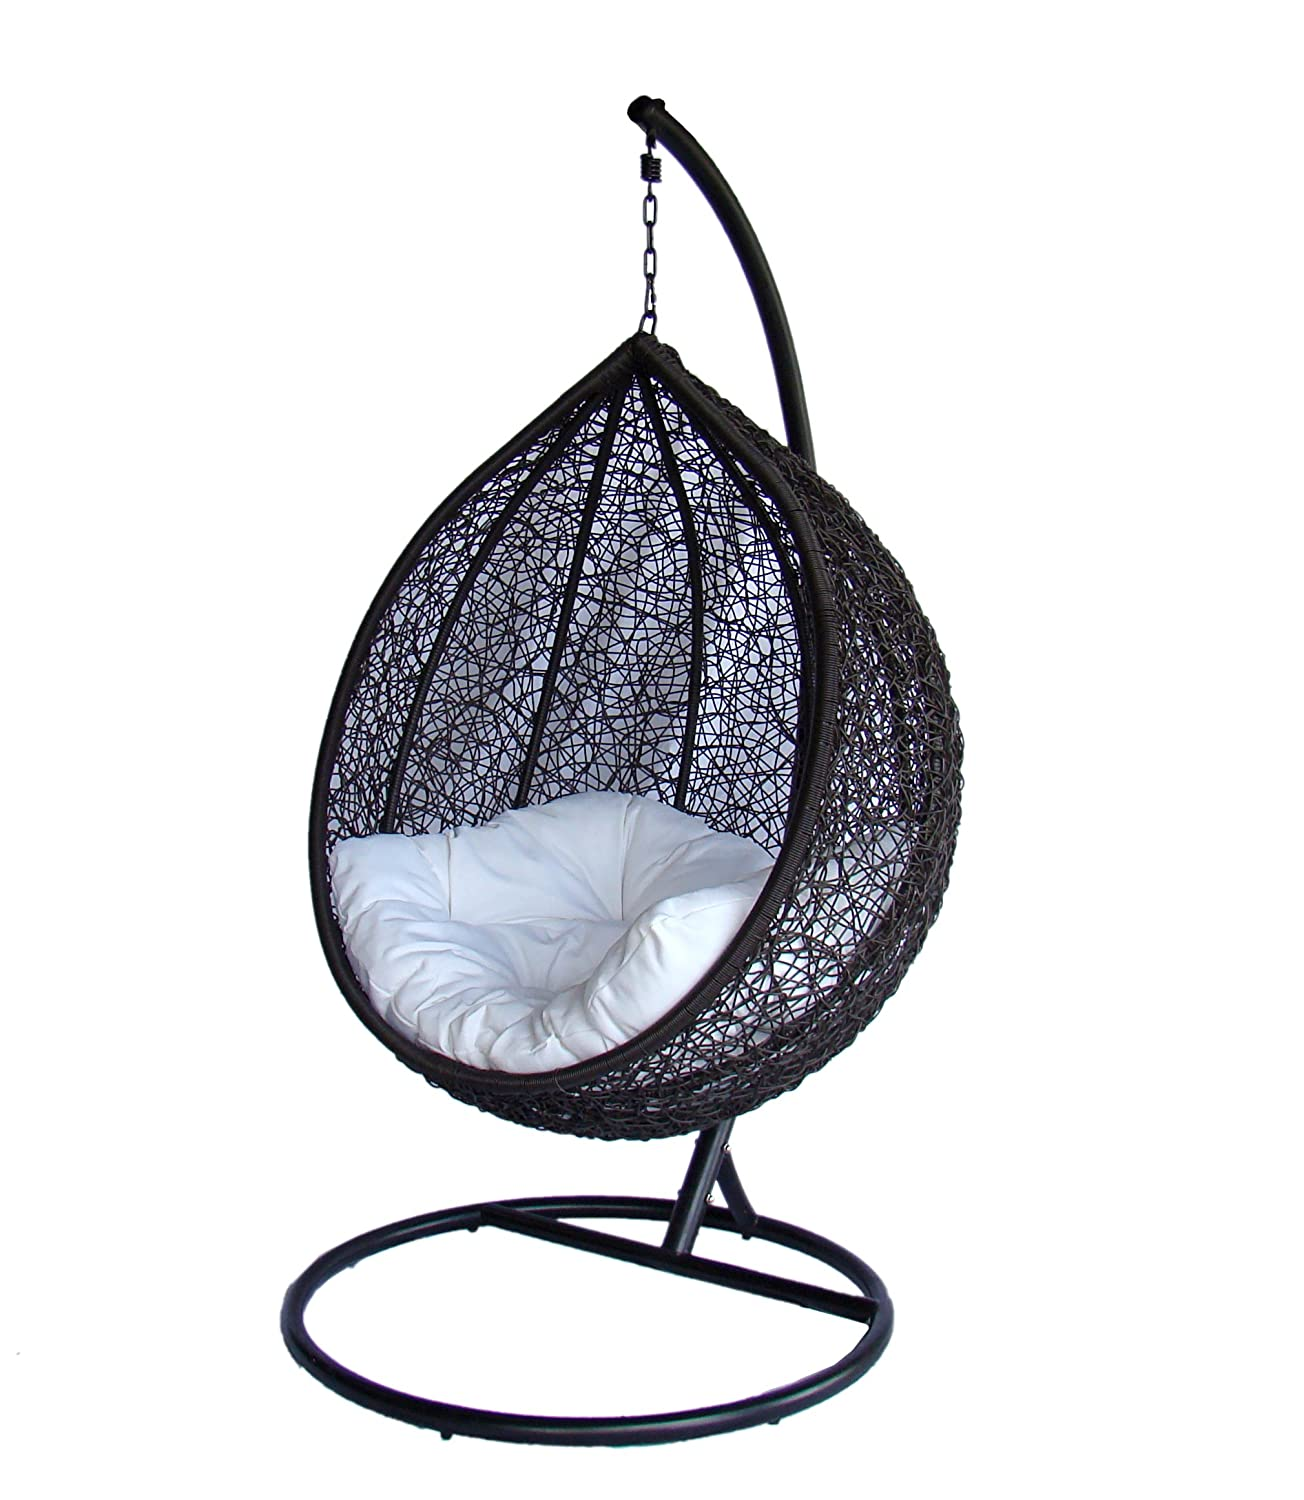 Amazon.com : Ceri   Outdoor Swing Chair/Great Hammocks Model   DL003 BK :  Garden U0026 Outdoor